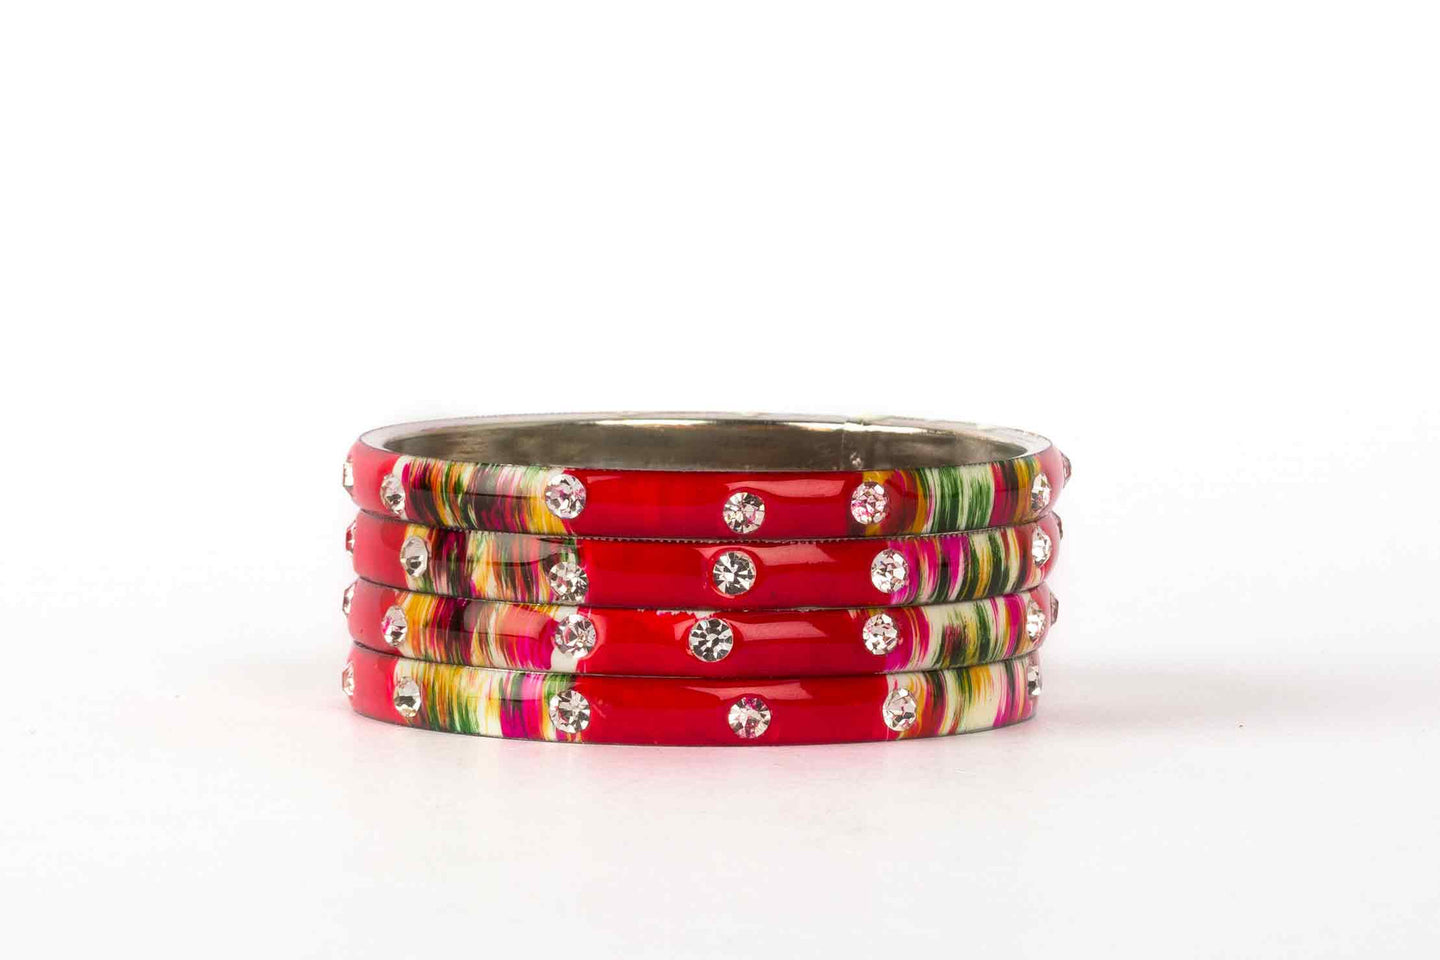 RED MEENAKARI BRACELETS WITH HAND PAINTED PRINT DESIGN AND RUNNING STONES